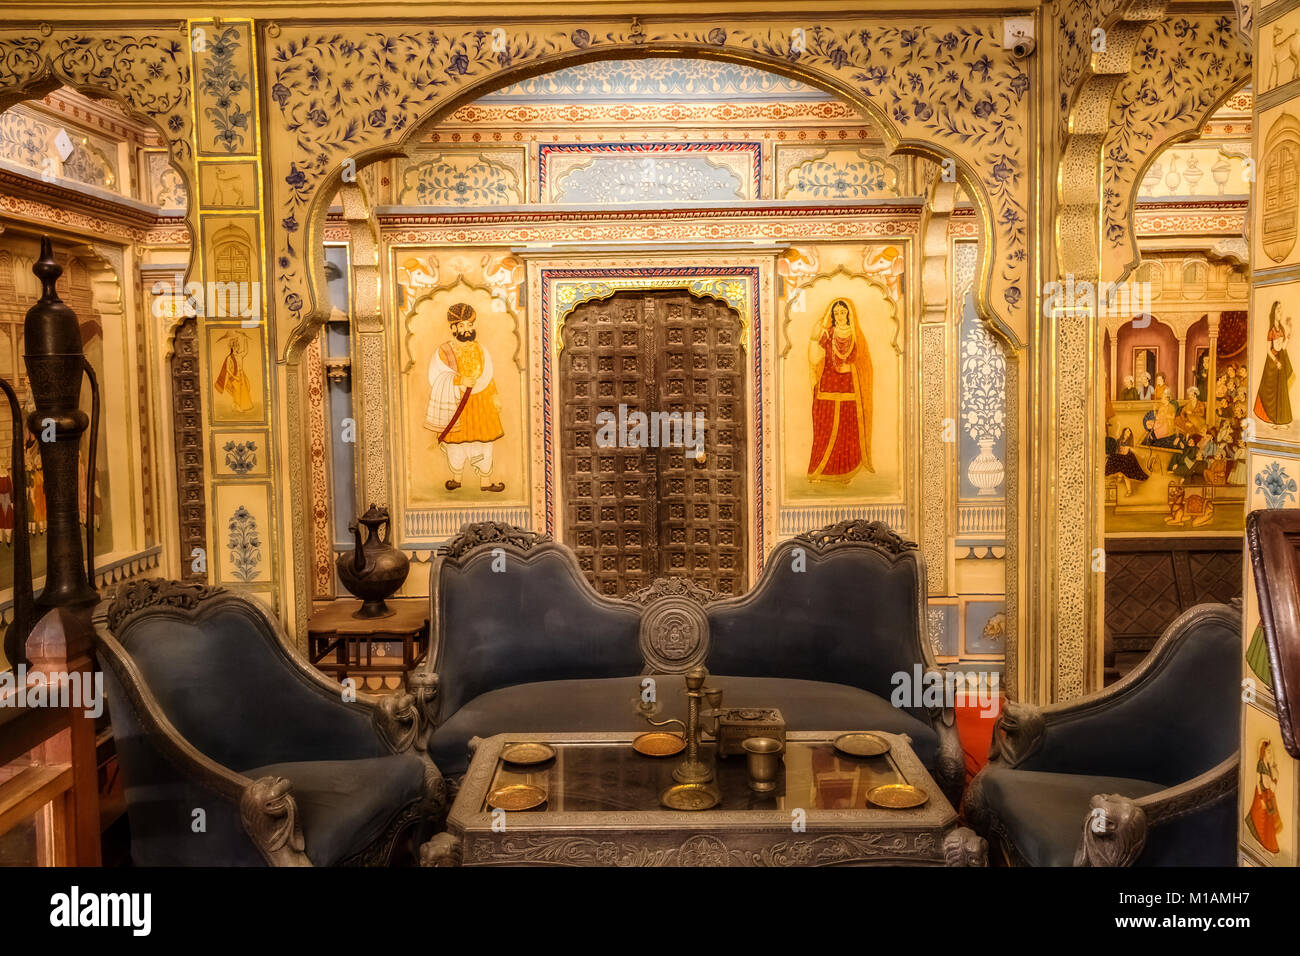 art rajasthan stock photos art rajasthan stock images alamy. Black Bedroom Furniture Sets. Home Design Ideas